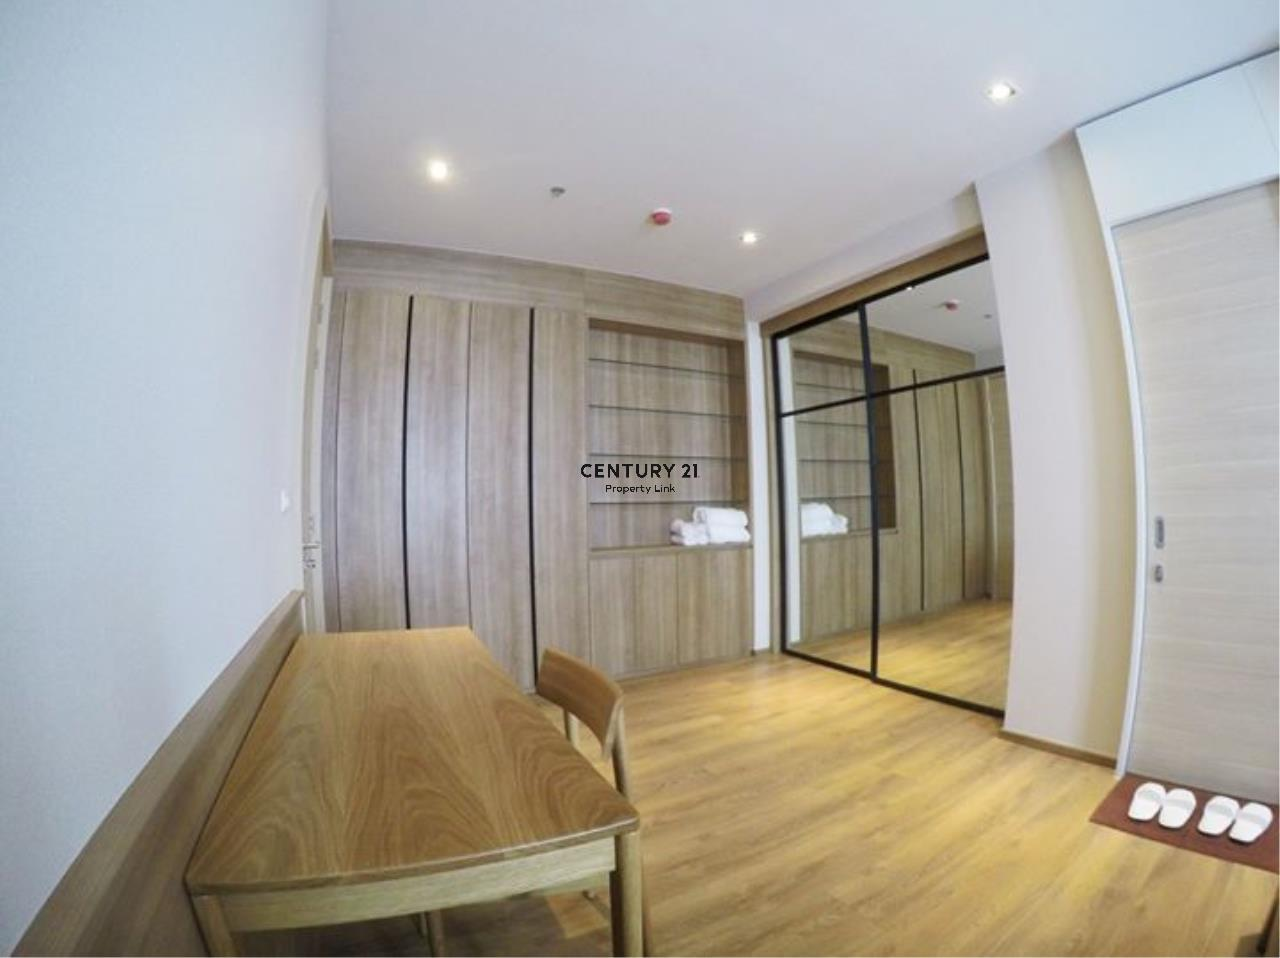 Century21 Property Link Agency's 39-CC-61514 Park 24 Room For Sale/ Rent 1 Bedroom Plus Near BTS Phrom Phong Sale price 15.45MB./ 28,000THB/ month 5